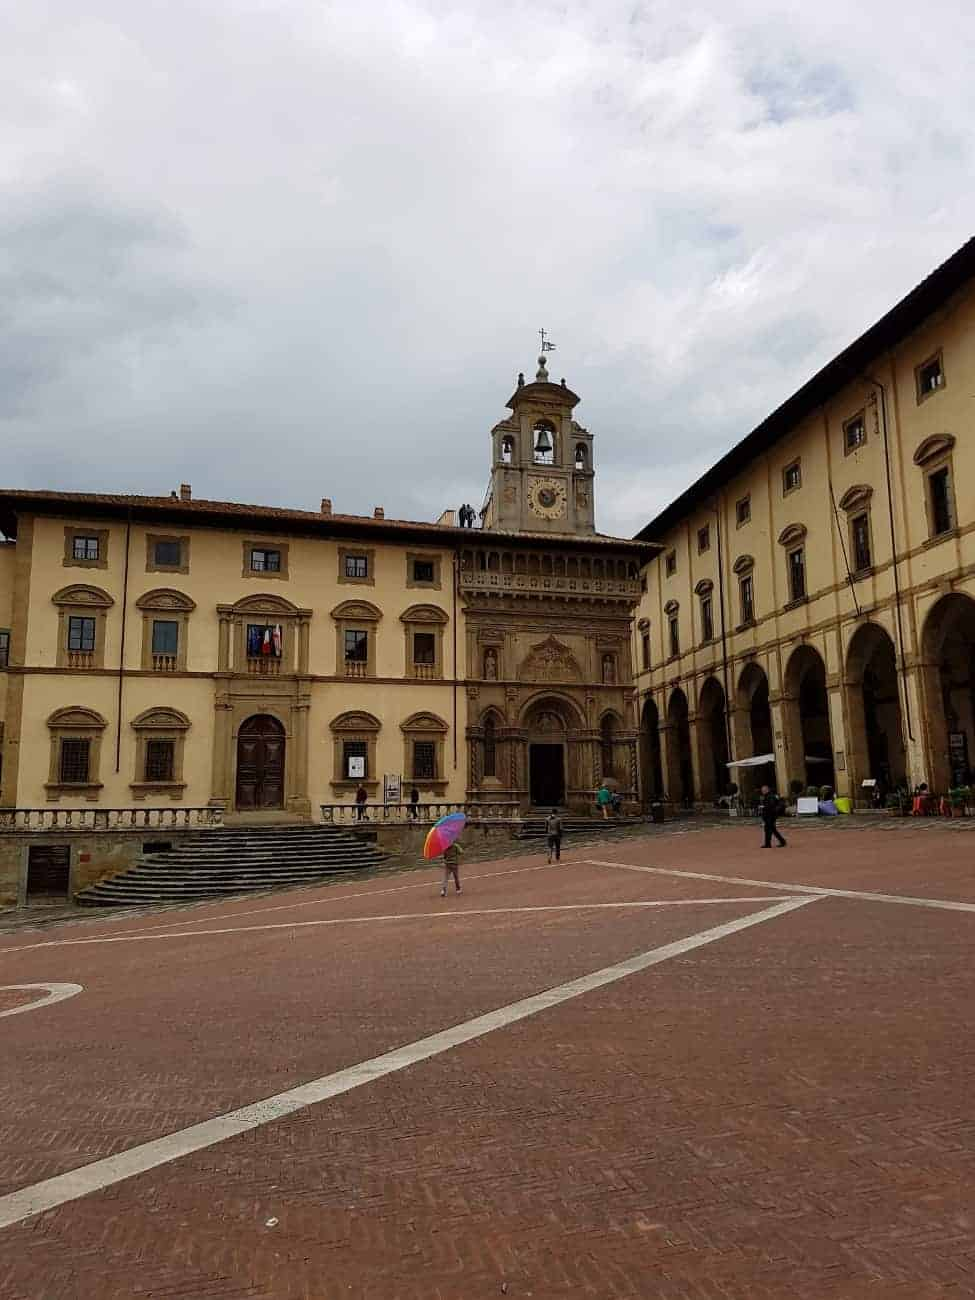 There is plenty to see and do in Arezzo, Tuscany it is the perfect place for a day trip on your next visit to Italy. #arezzo #tuscany #italiantowns #italy